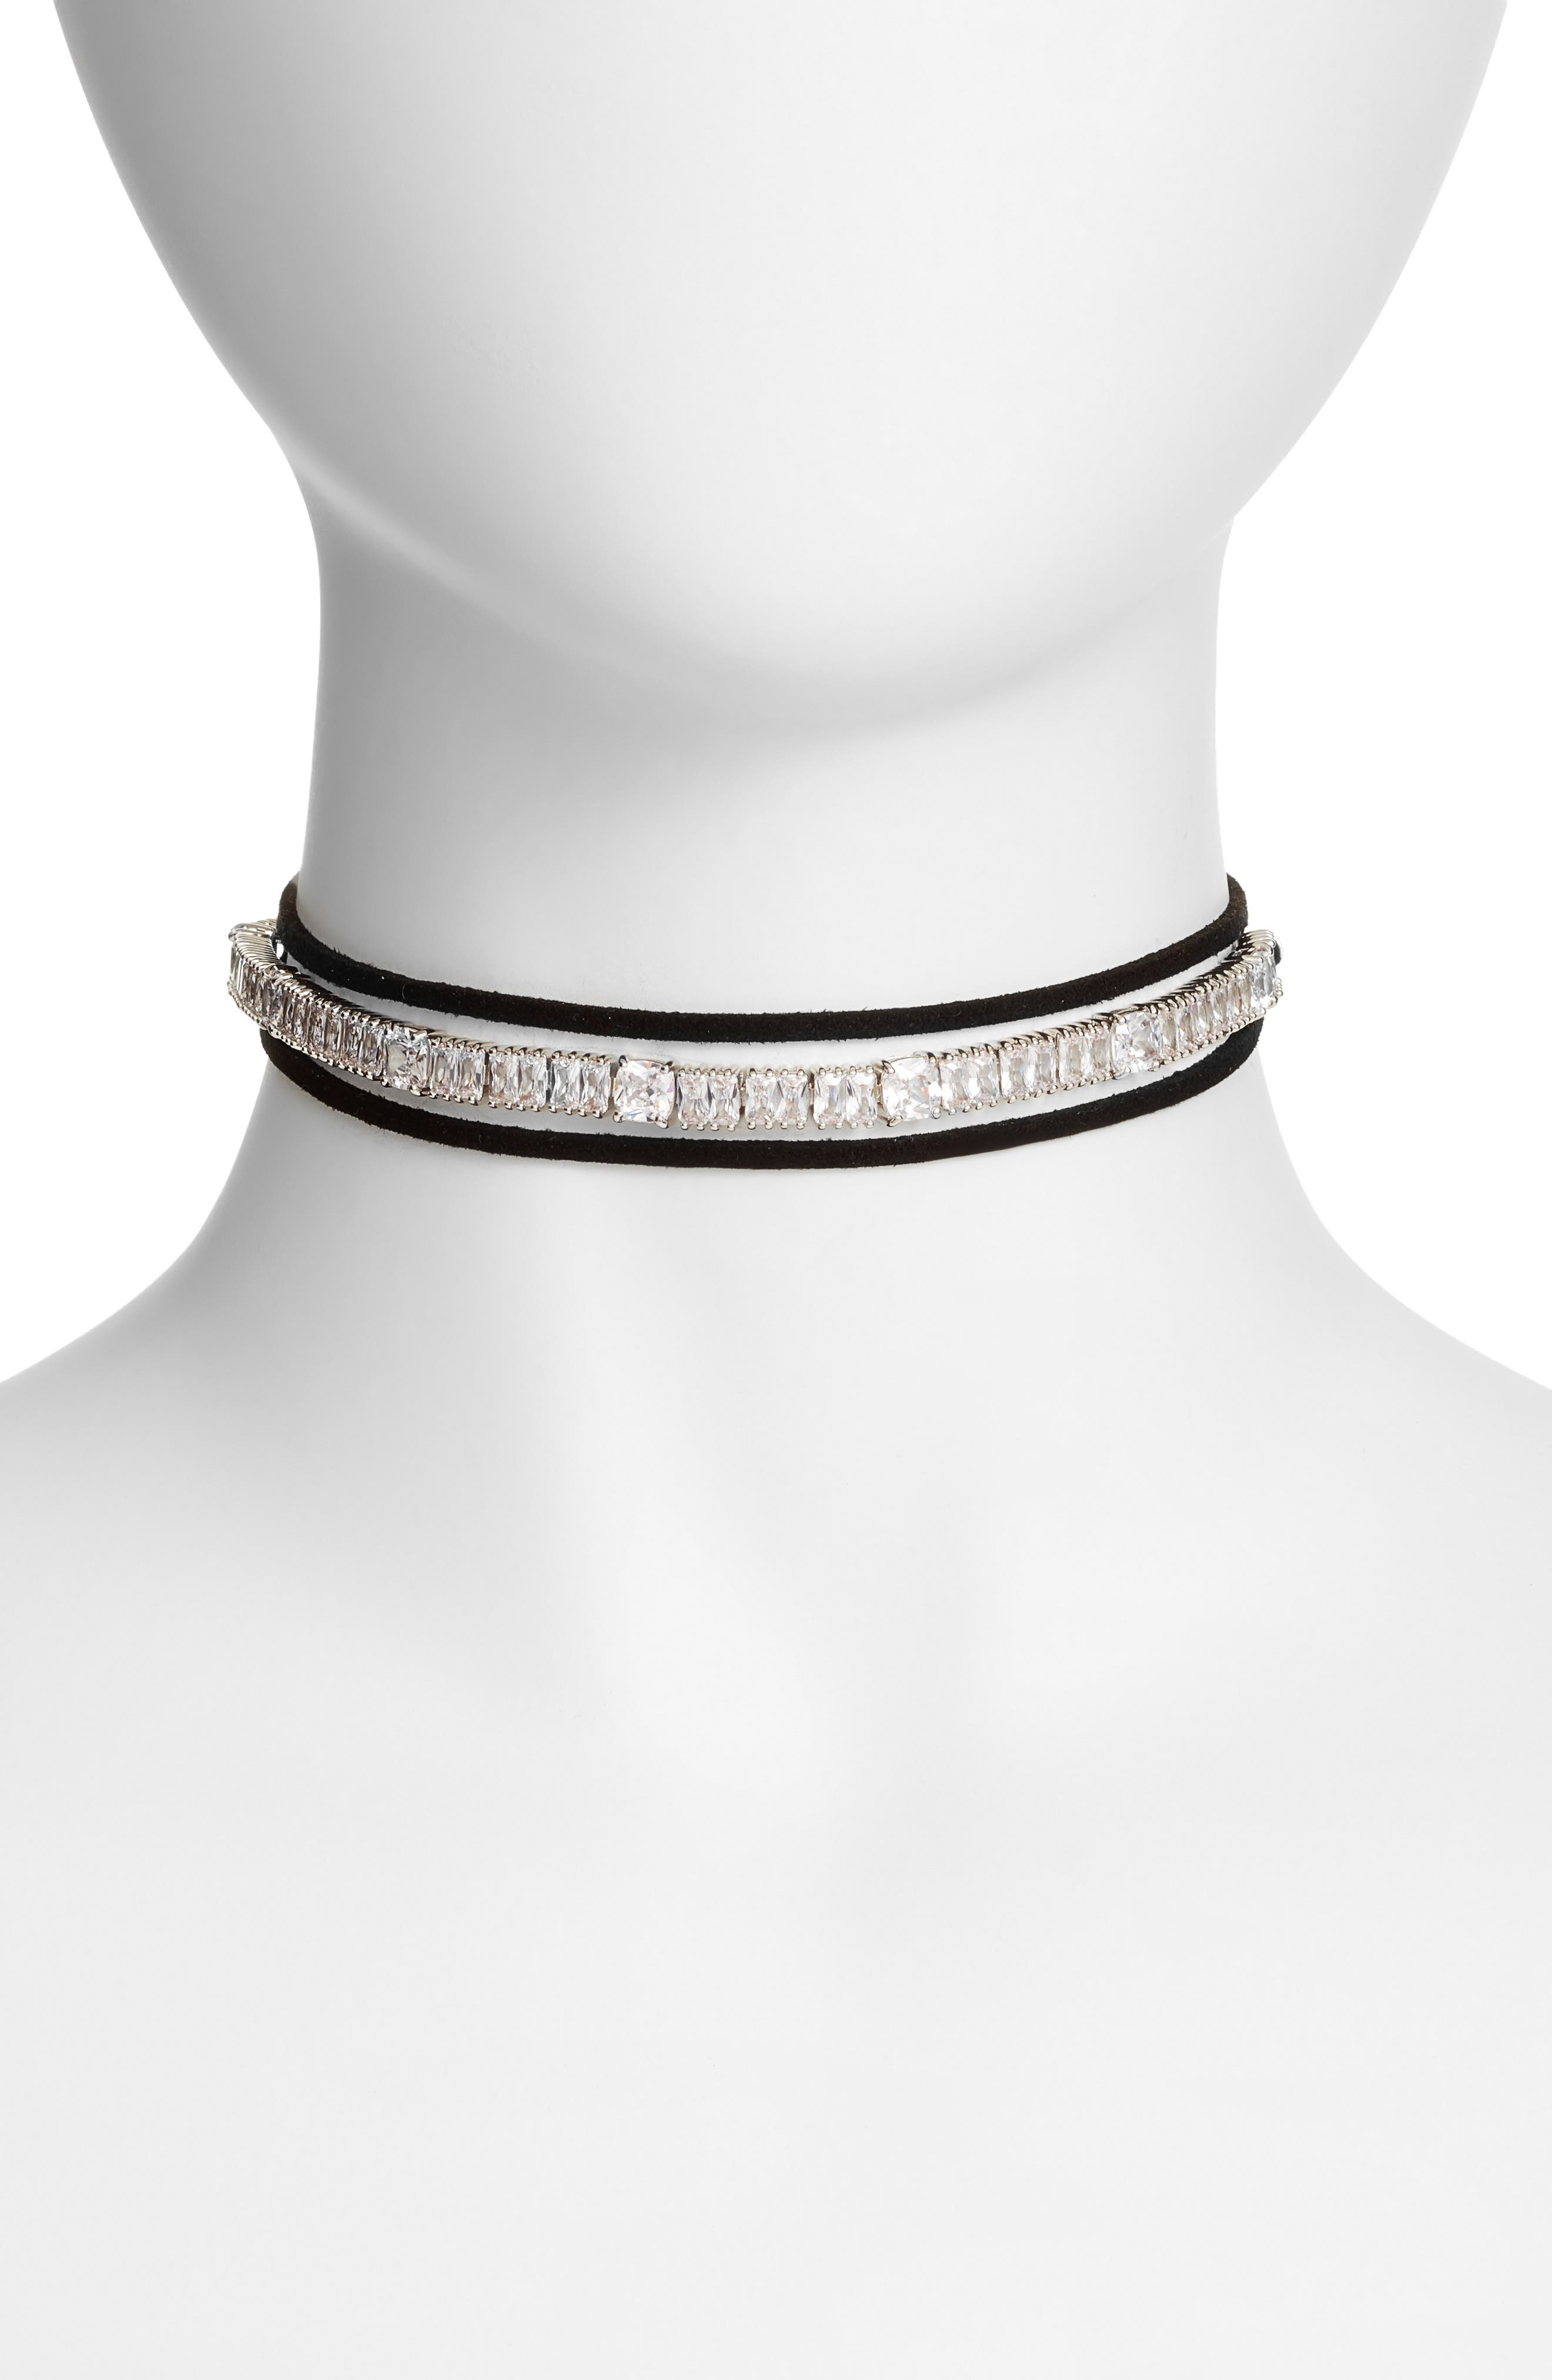 Alternate Image 1 Selected - CZ by Kenneth Jay Lane Baguette Cushion Wrap Choker